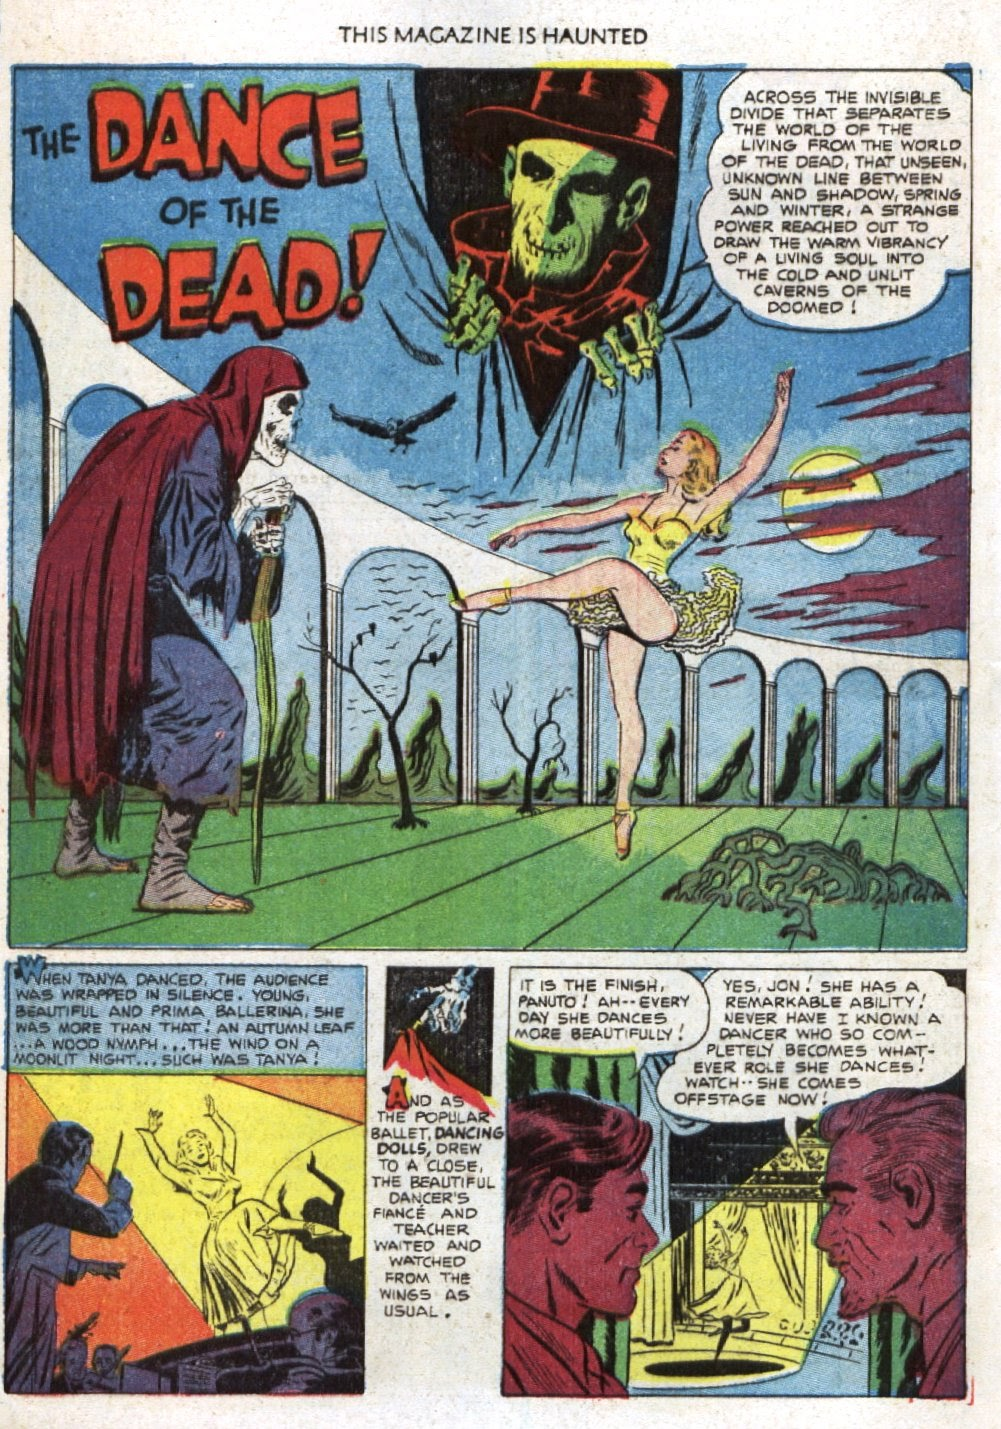 Read online This Magazine Is Haunted comic -  Issue #8 - 25